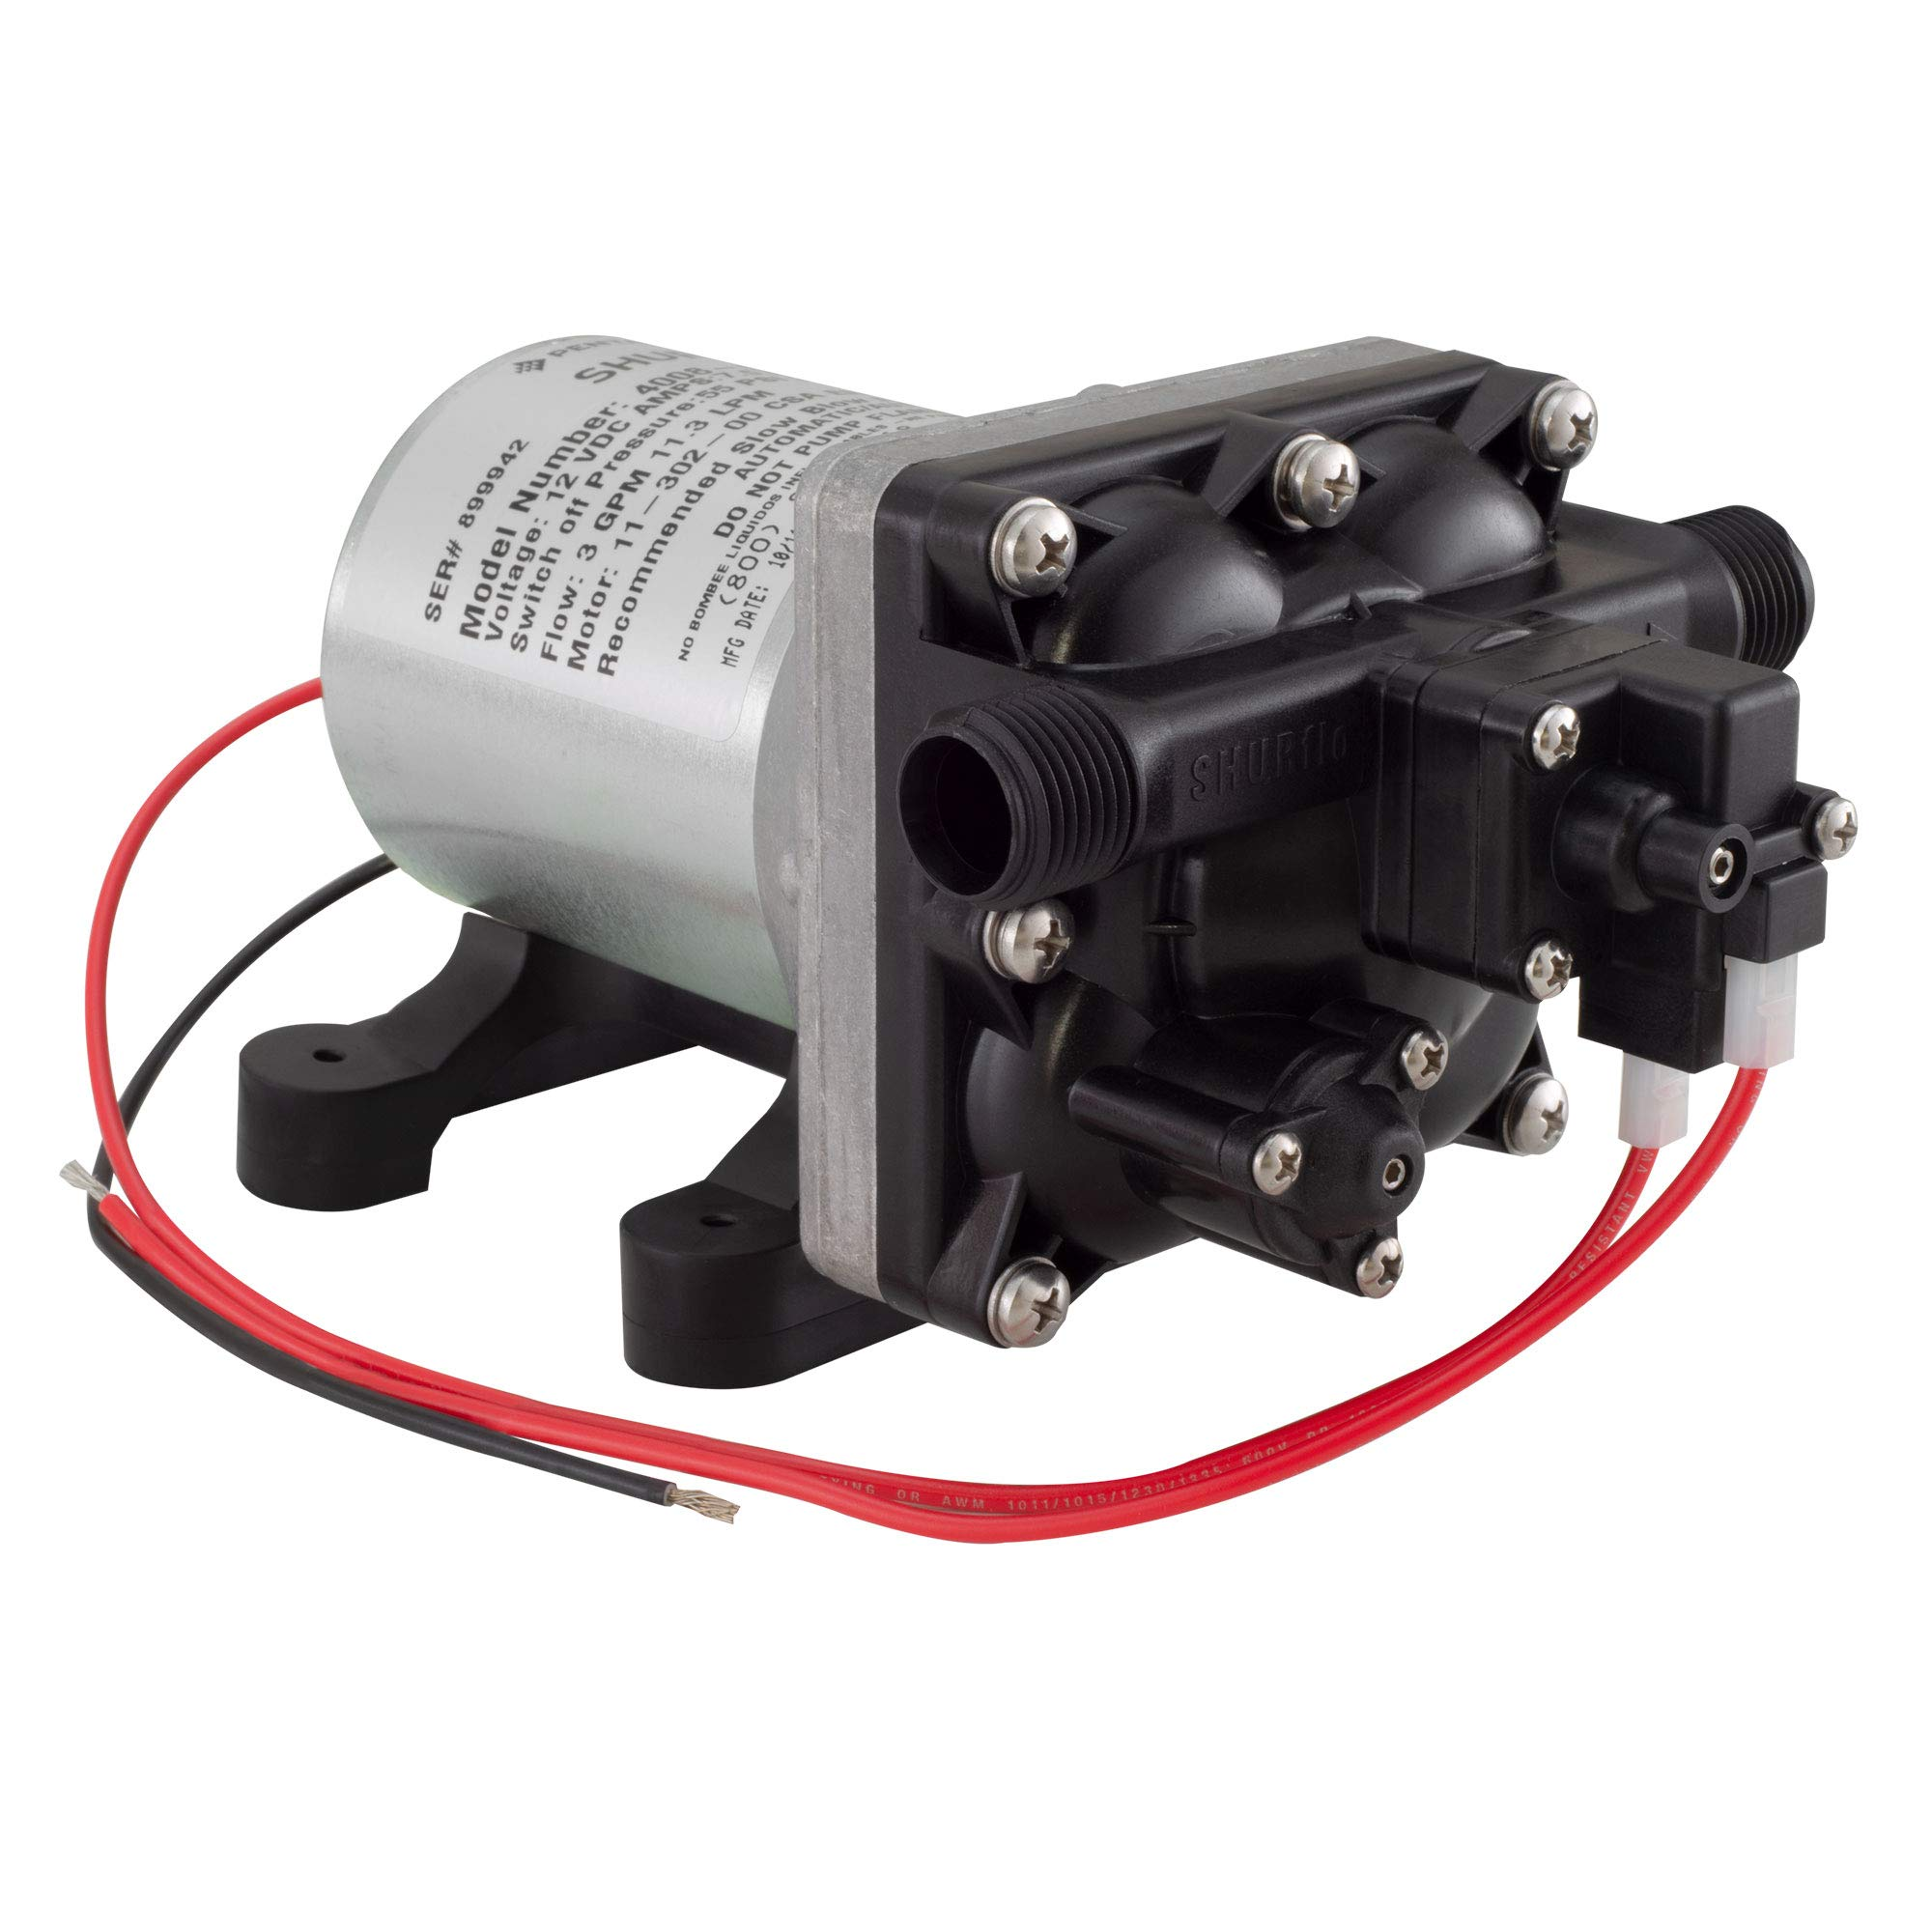 SHURFLO 4008-101-A65 New 3.0 GPM RV Water Pump Revolution, 12V by SHURFLO